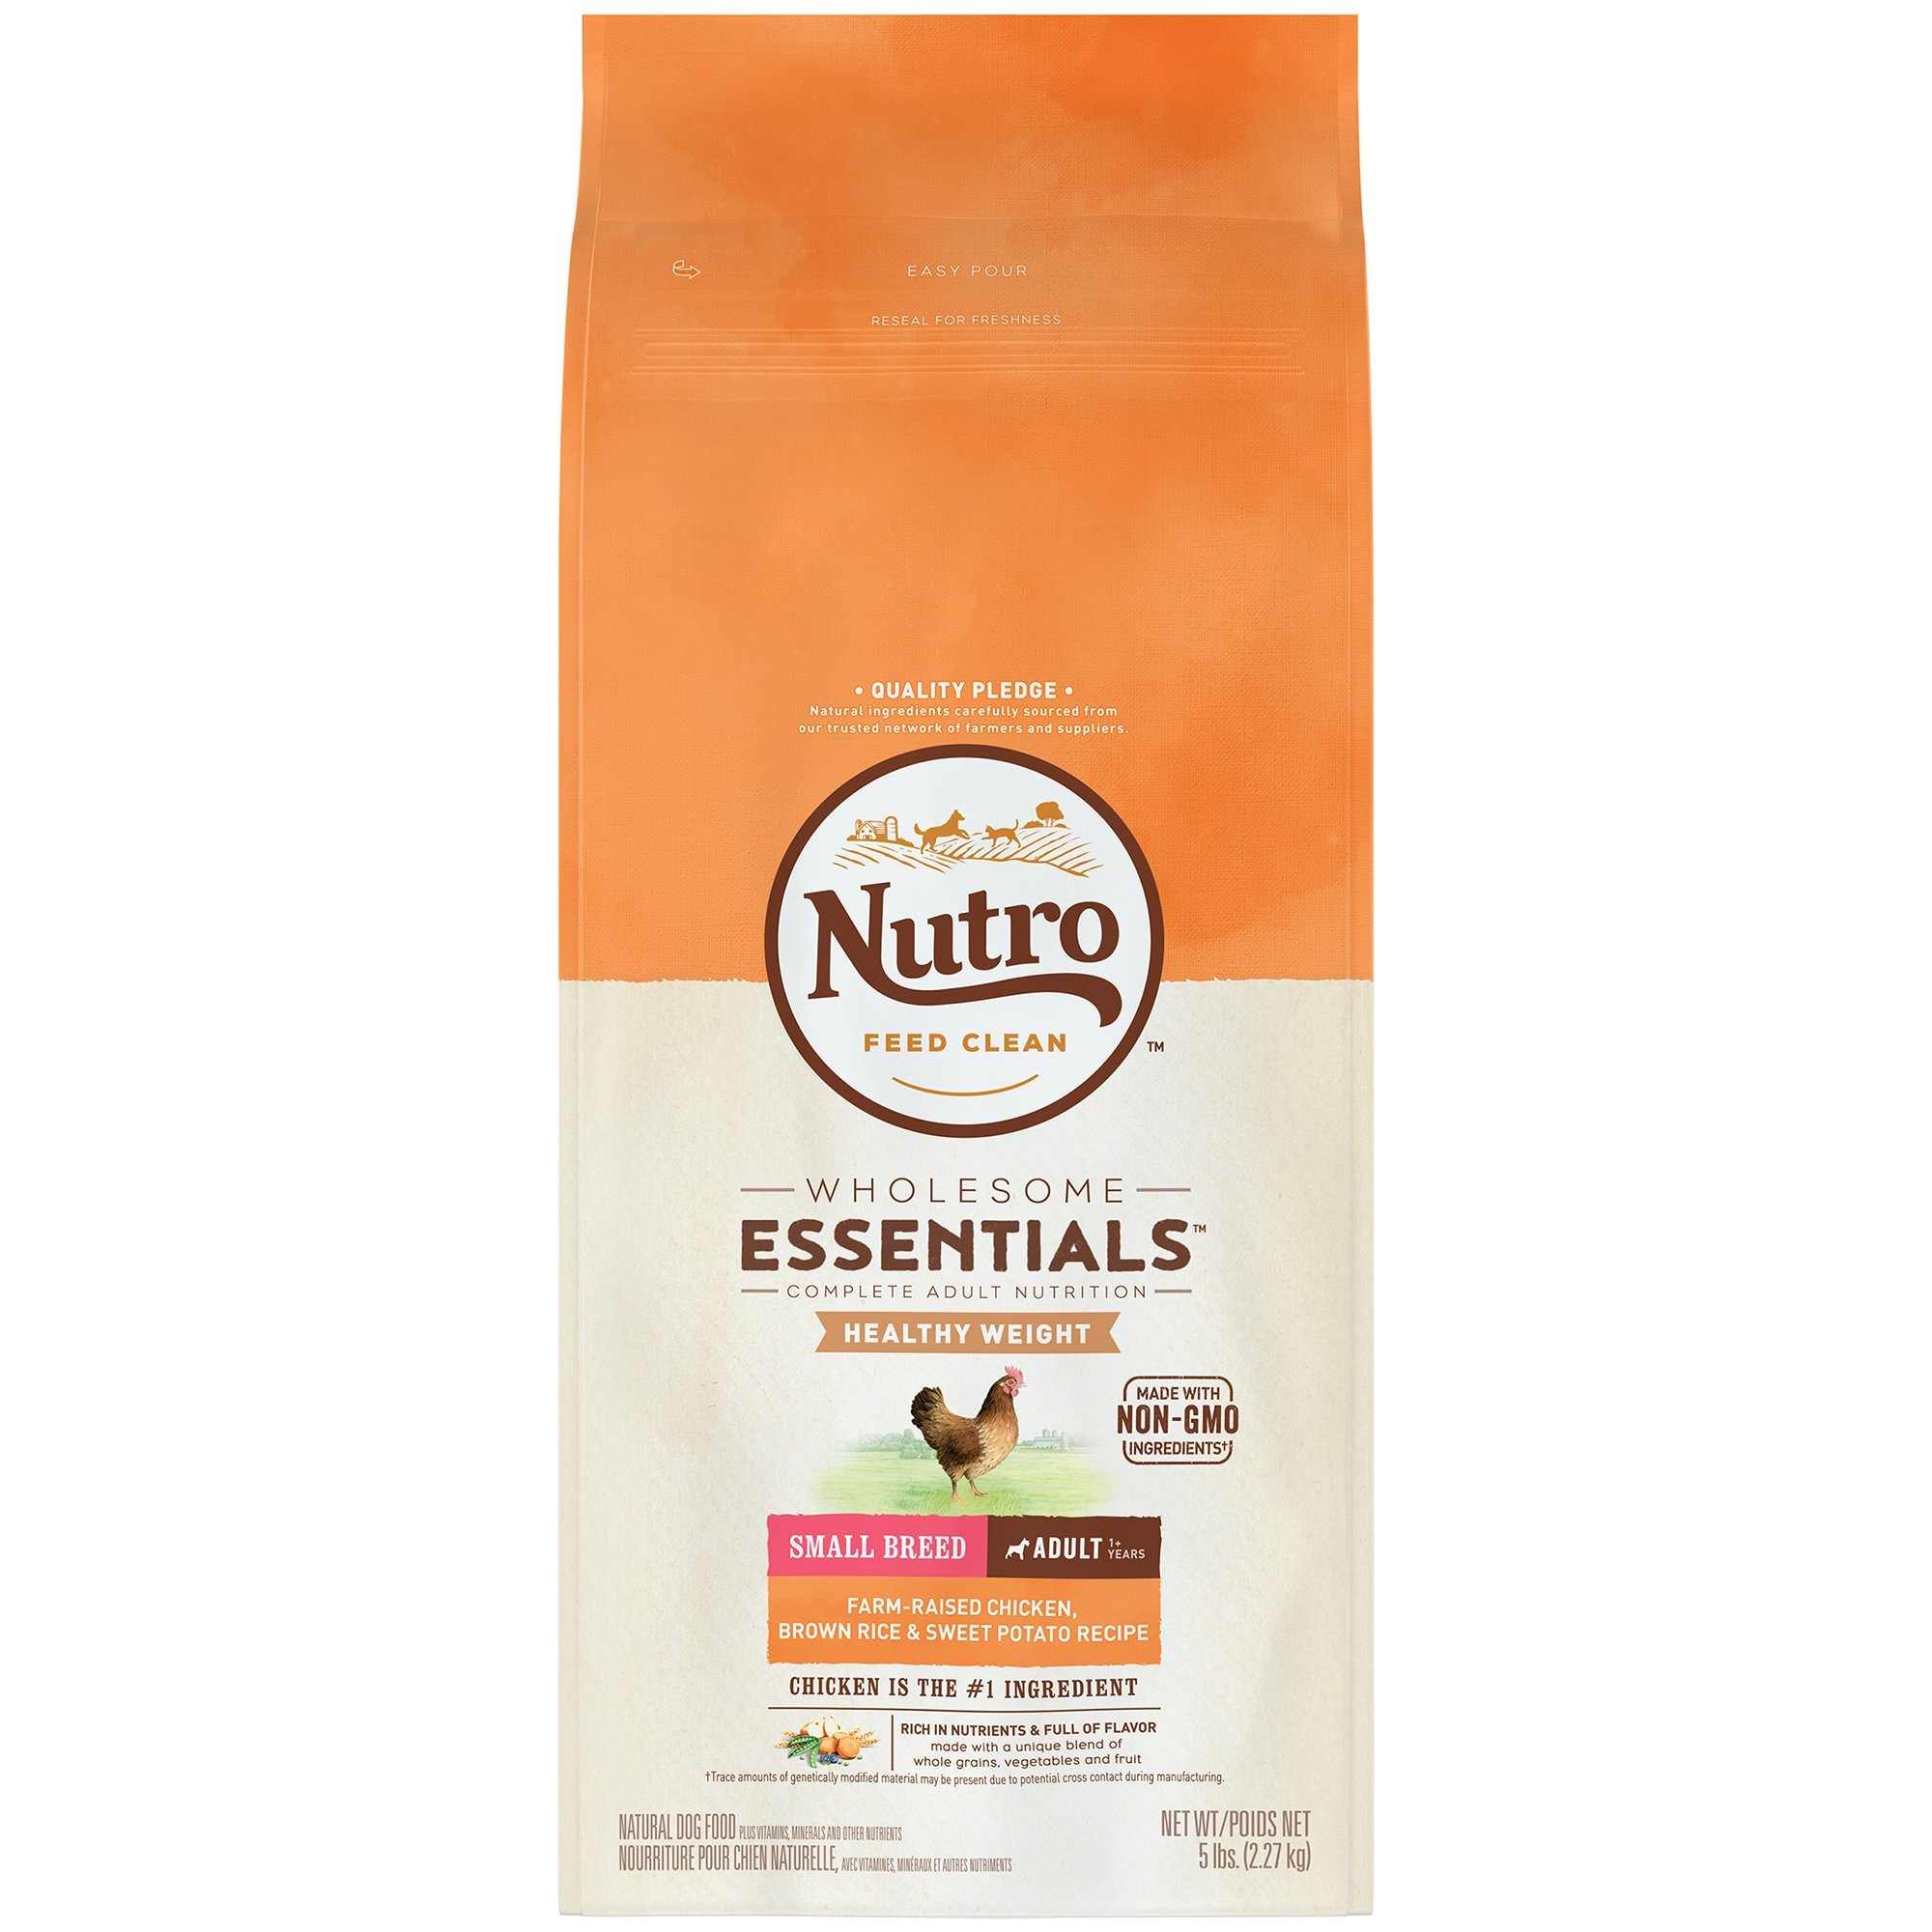 Nutro Wholesome Essentials Healthy Weight Adult Small Breed Dry Dog Food Farm-Raised Chicken, Brown Rice & Sweet Potato Recipe, 5 lb. Bag